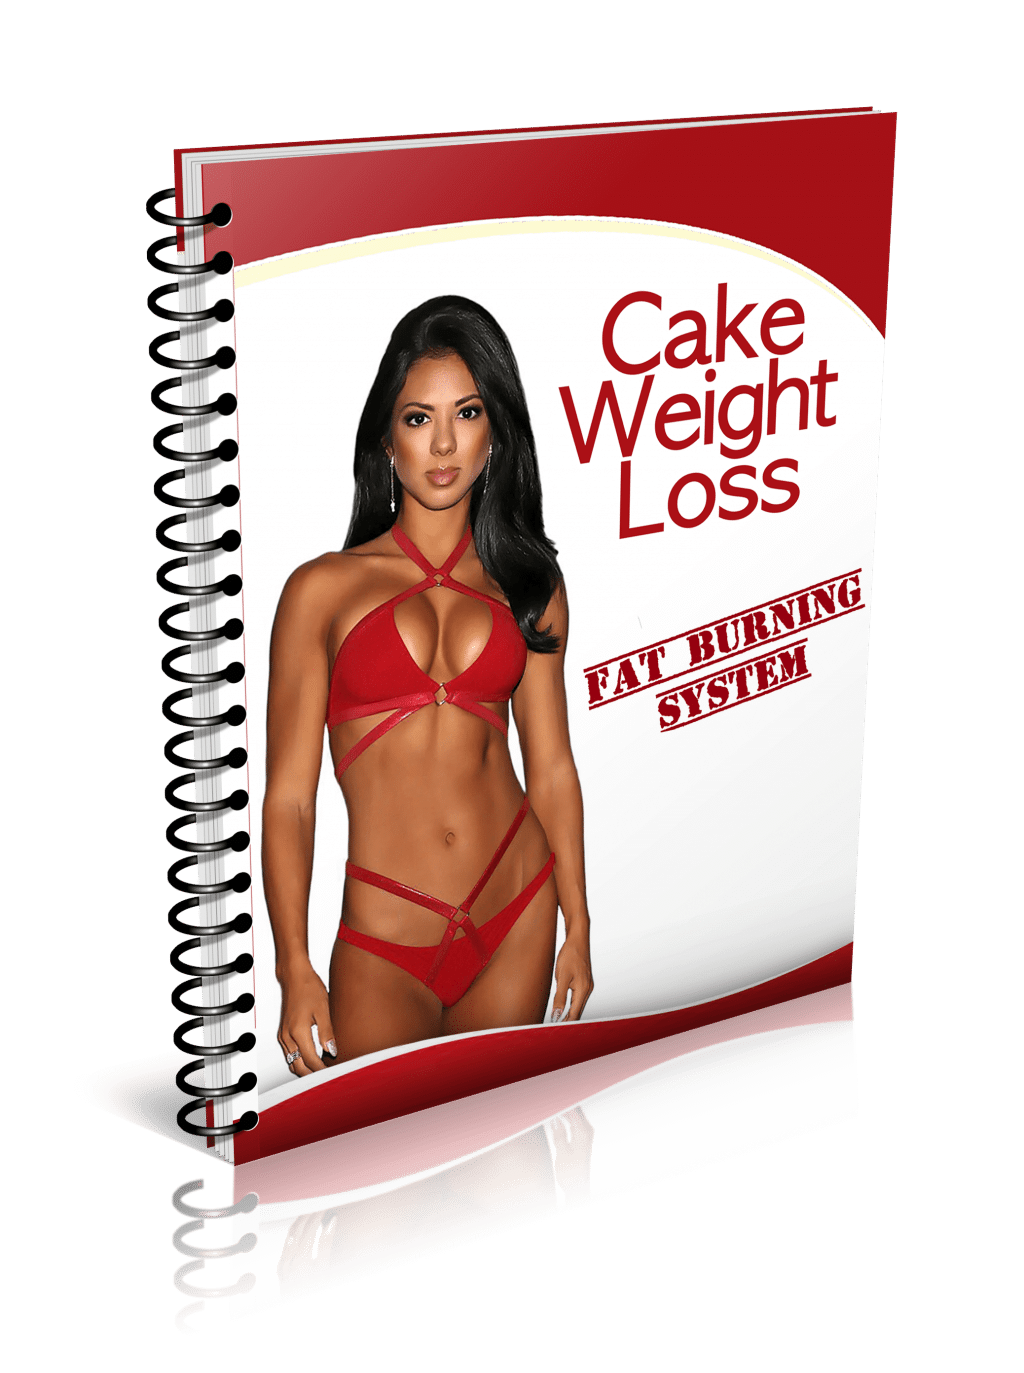 Cake Weight Loss System